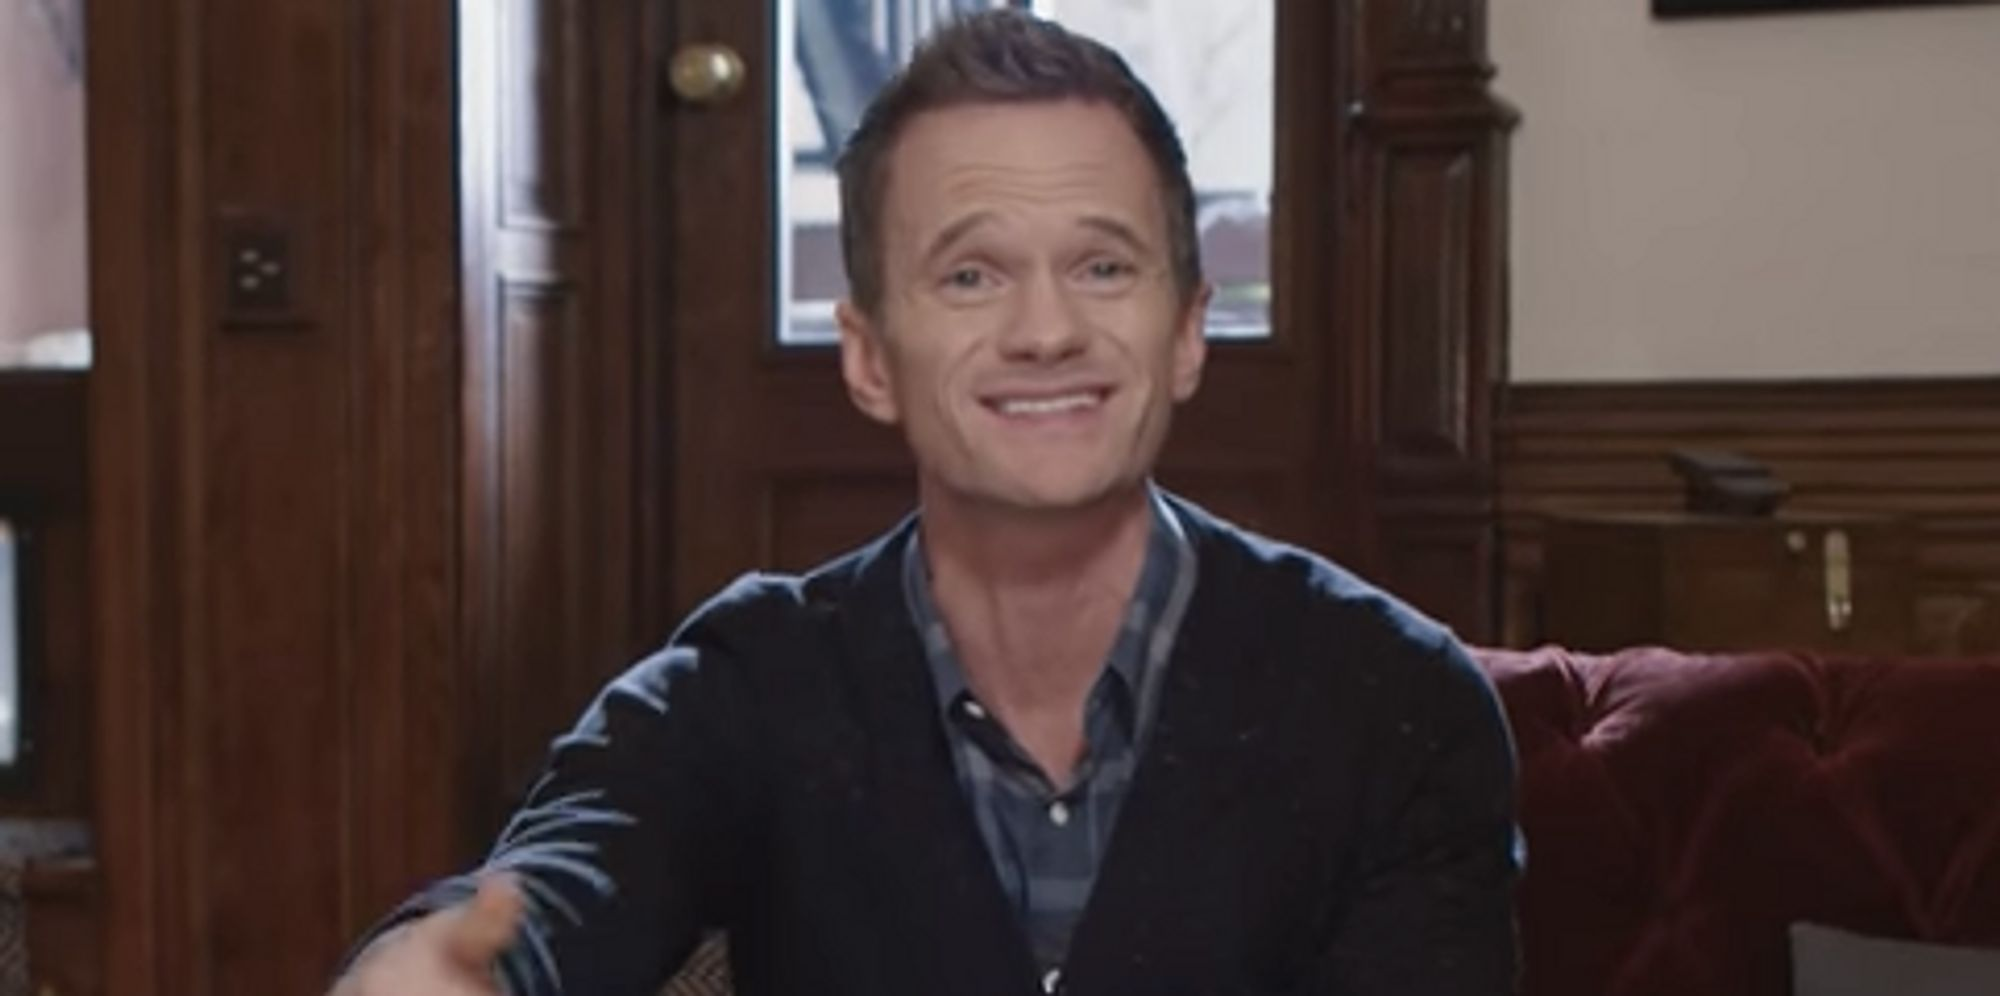 neil patrick harris gives lin manuel m da some competition in neil patrick harris gives lin manuel m da some competition in hamilton rap the huffington post